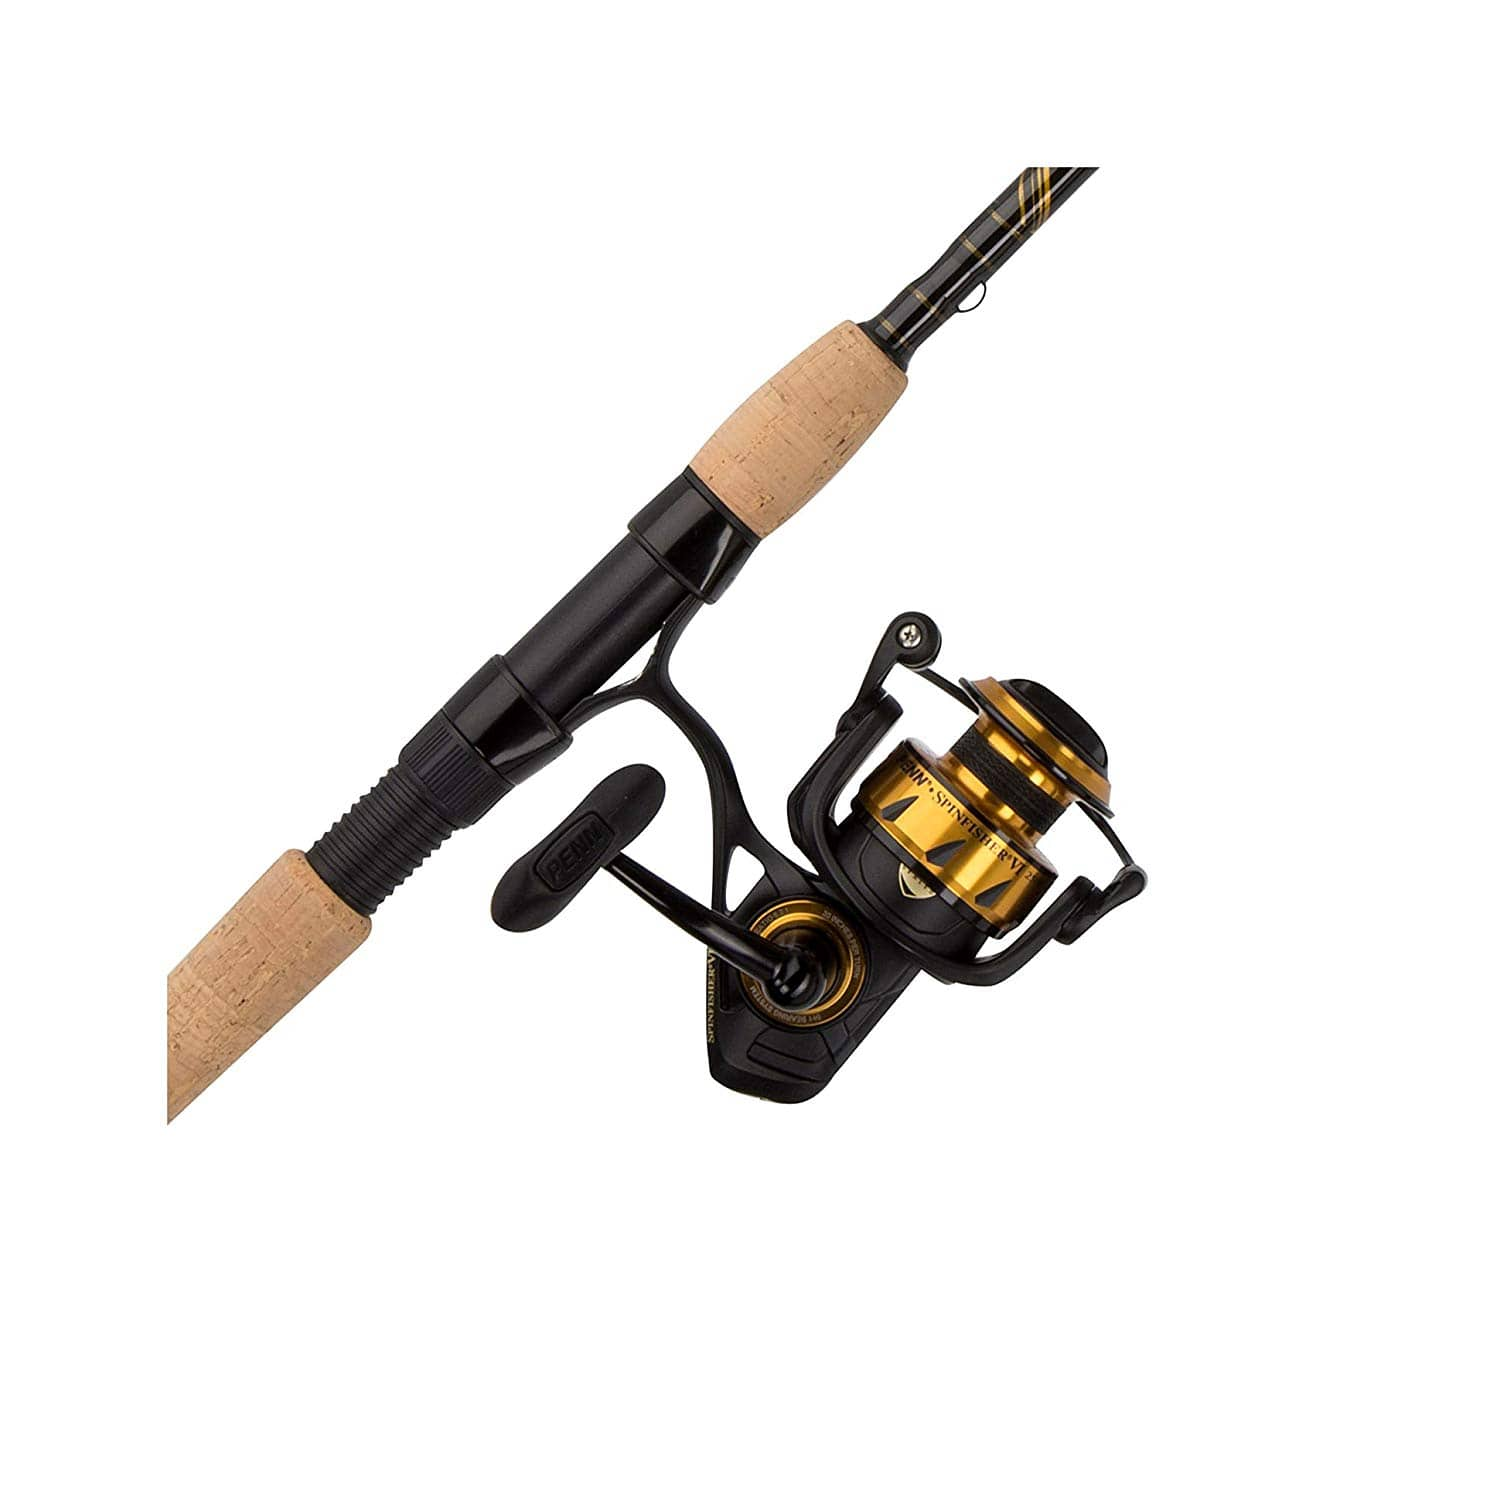 Penn Spinfisher VI Fishing Reel and Rod Combos - $135.99 and up